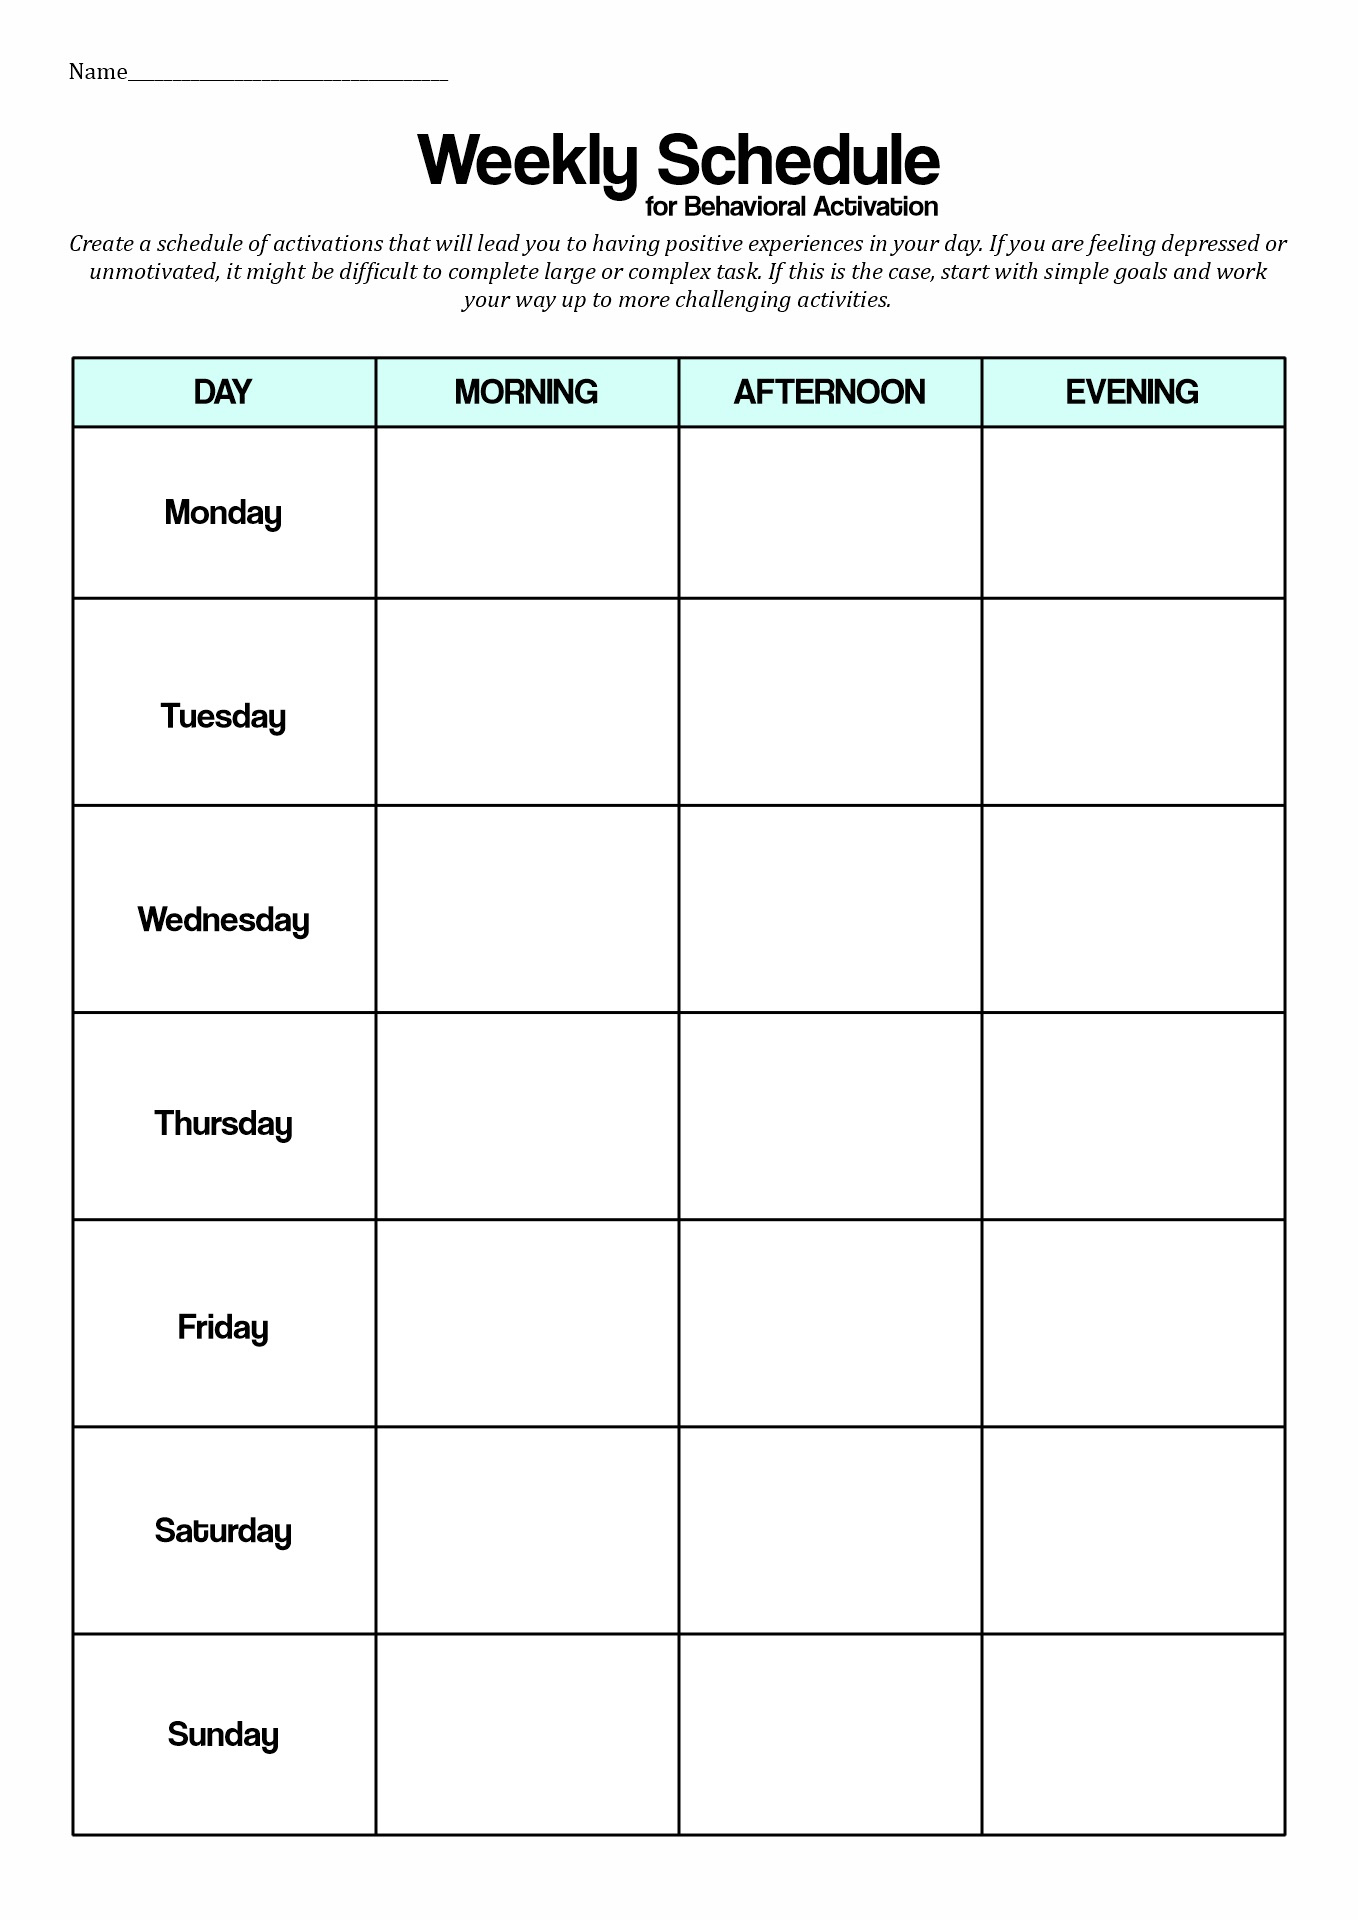 18 Best Images of Cognitive Behavioral Therapy Worksheets ...